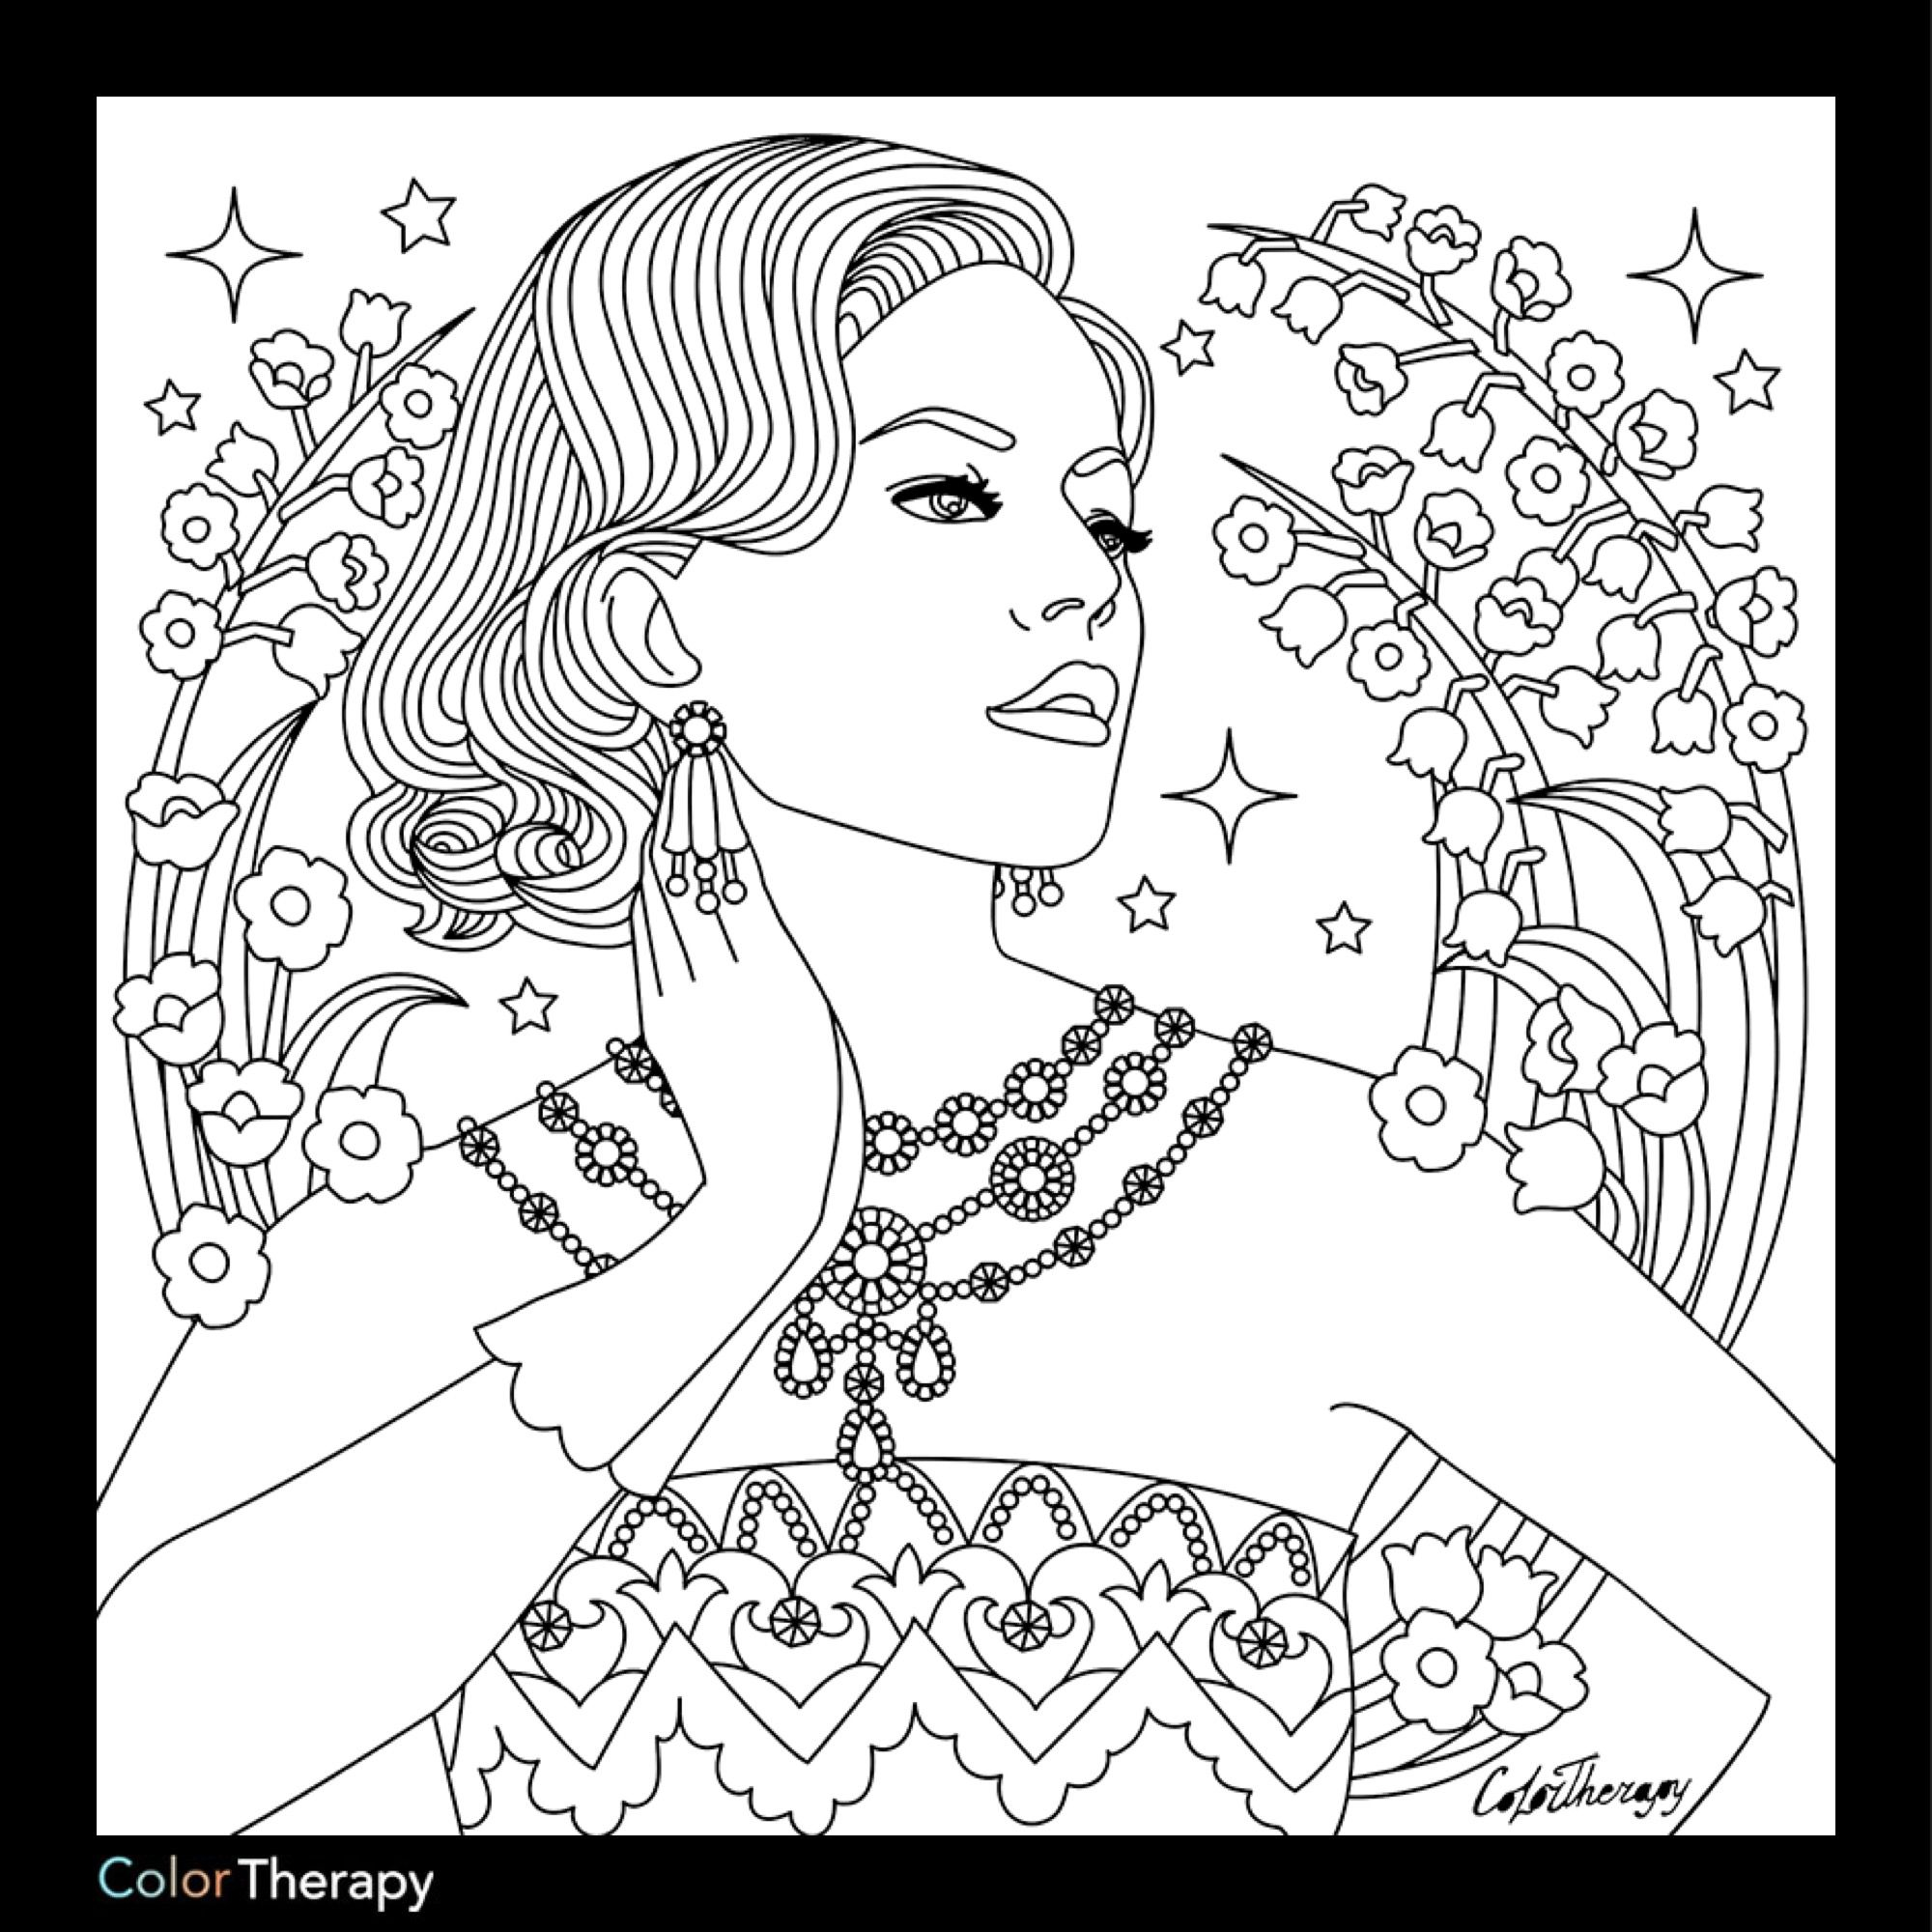 Pin by Val Wilson on Coloring pages | Pinterest | Coloring books ...